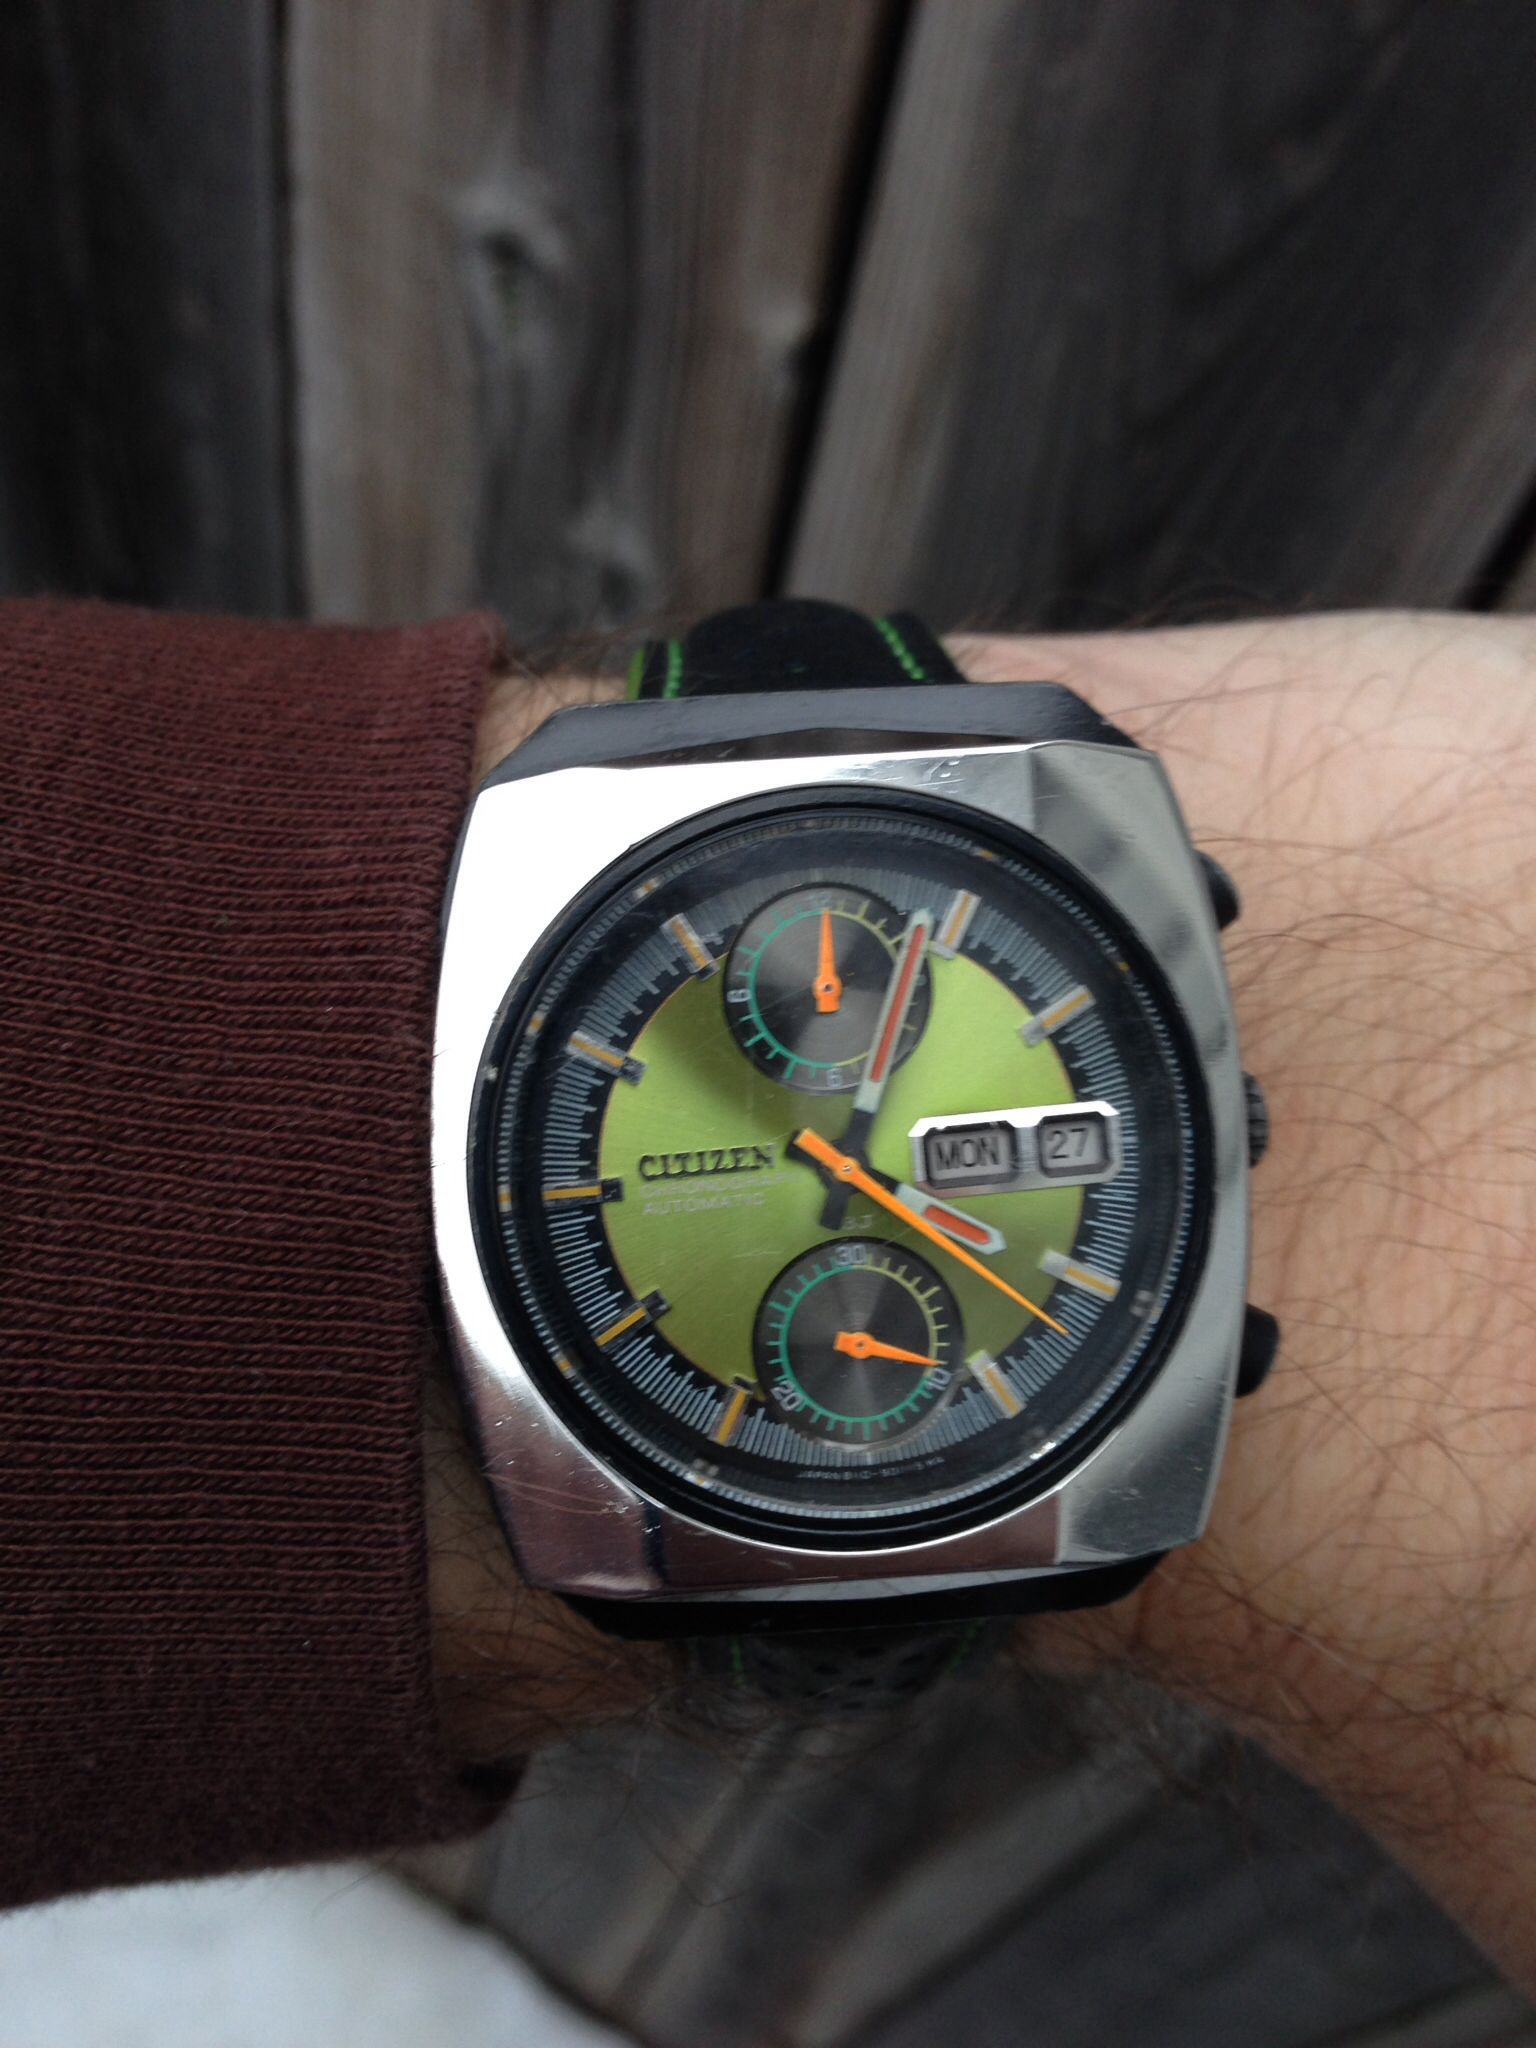 Citizen 67-9071 automatic chronograph with 8110a movement